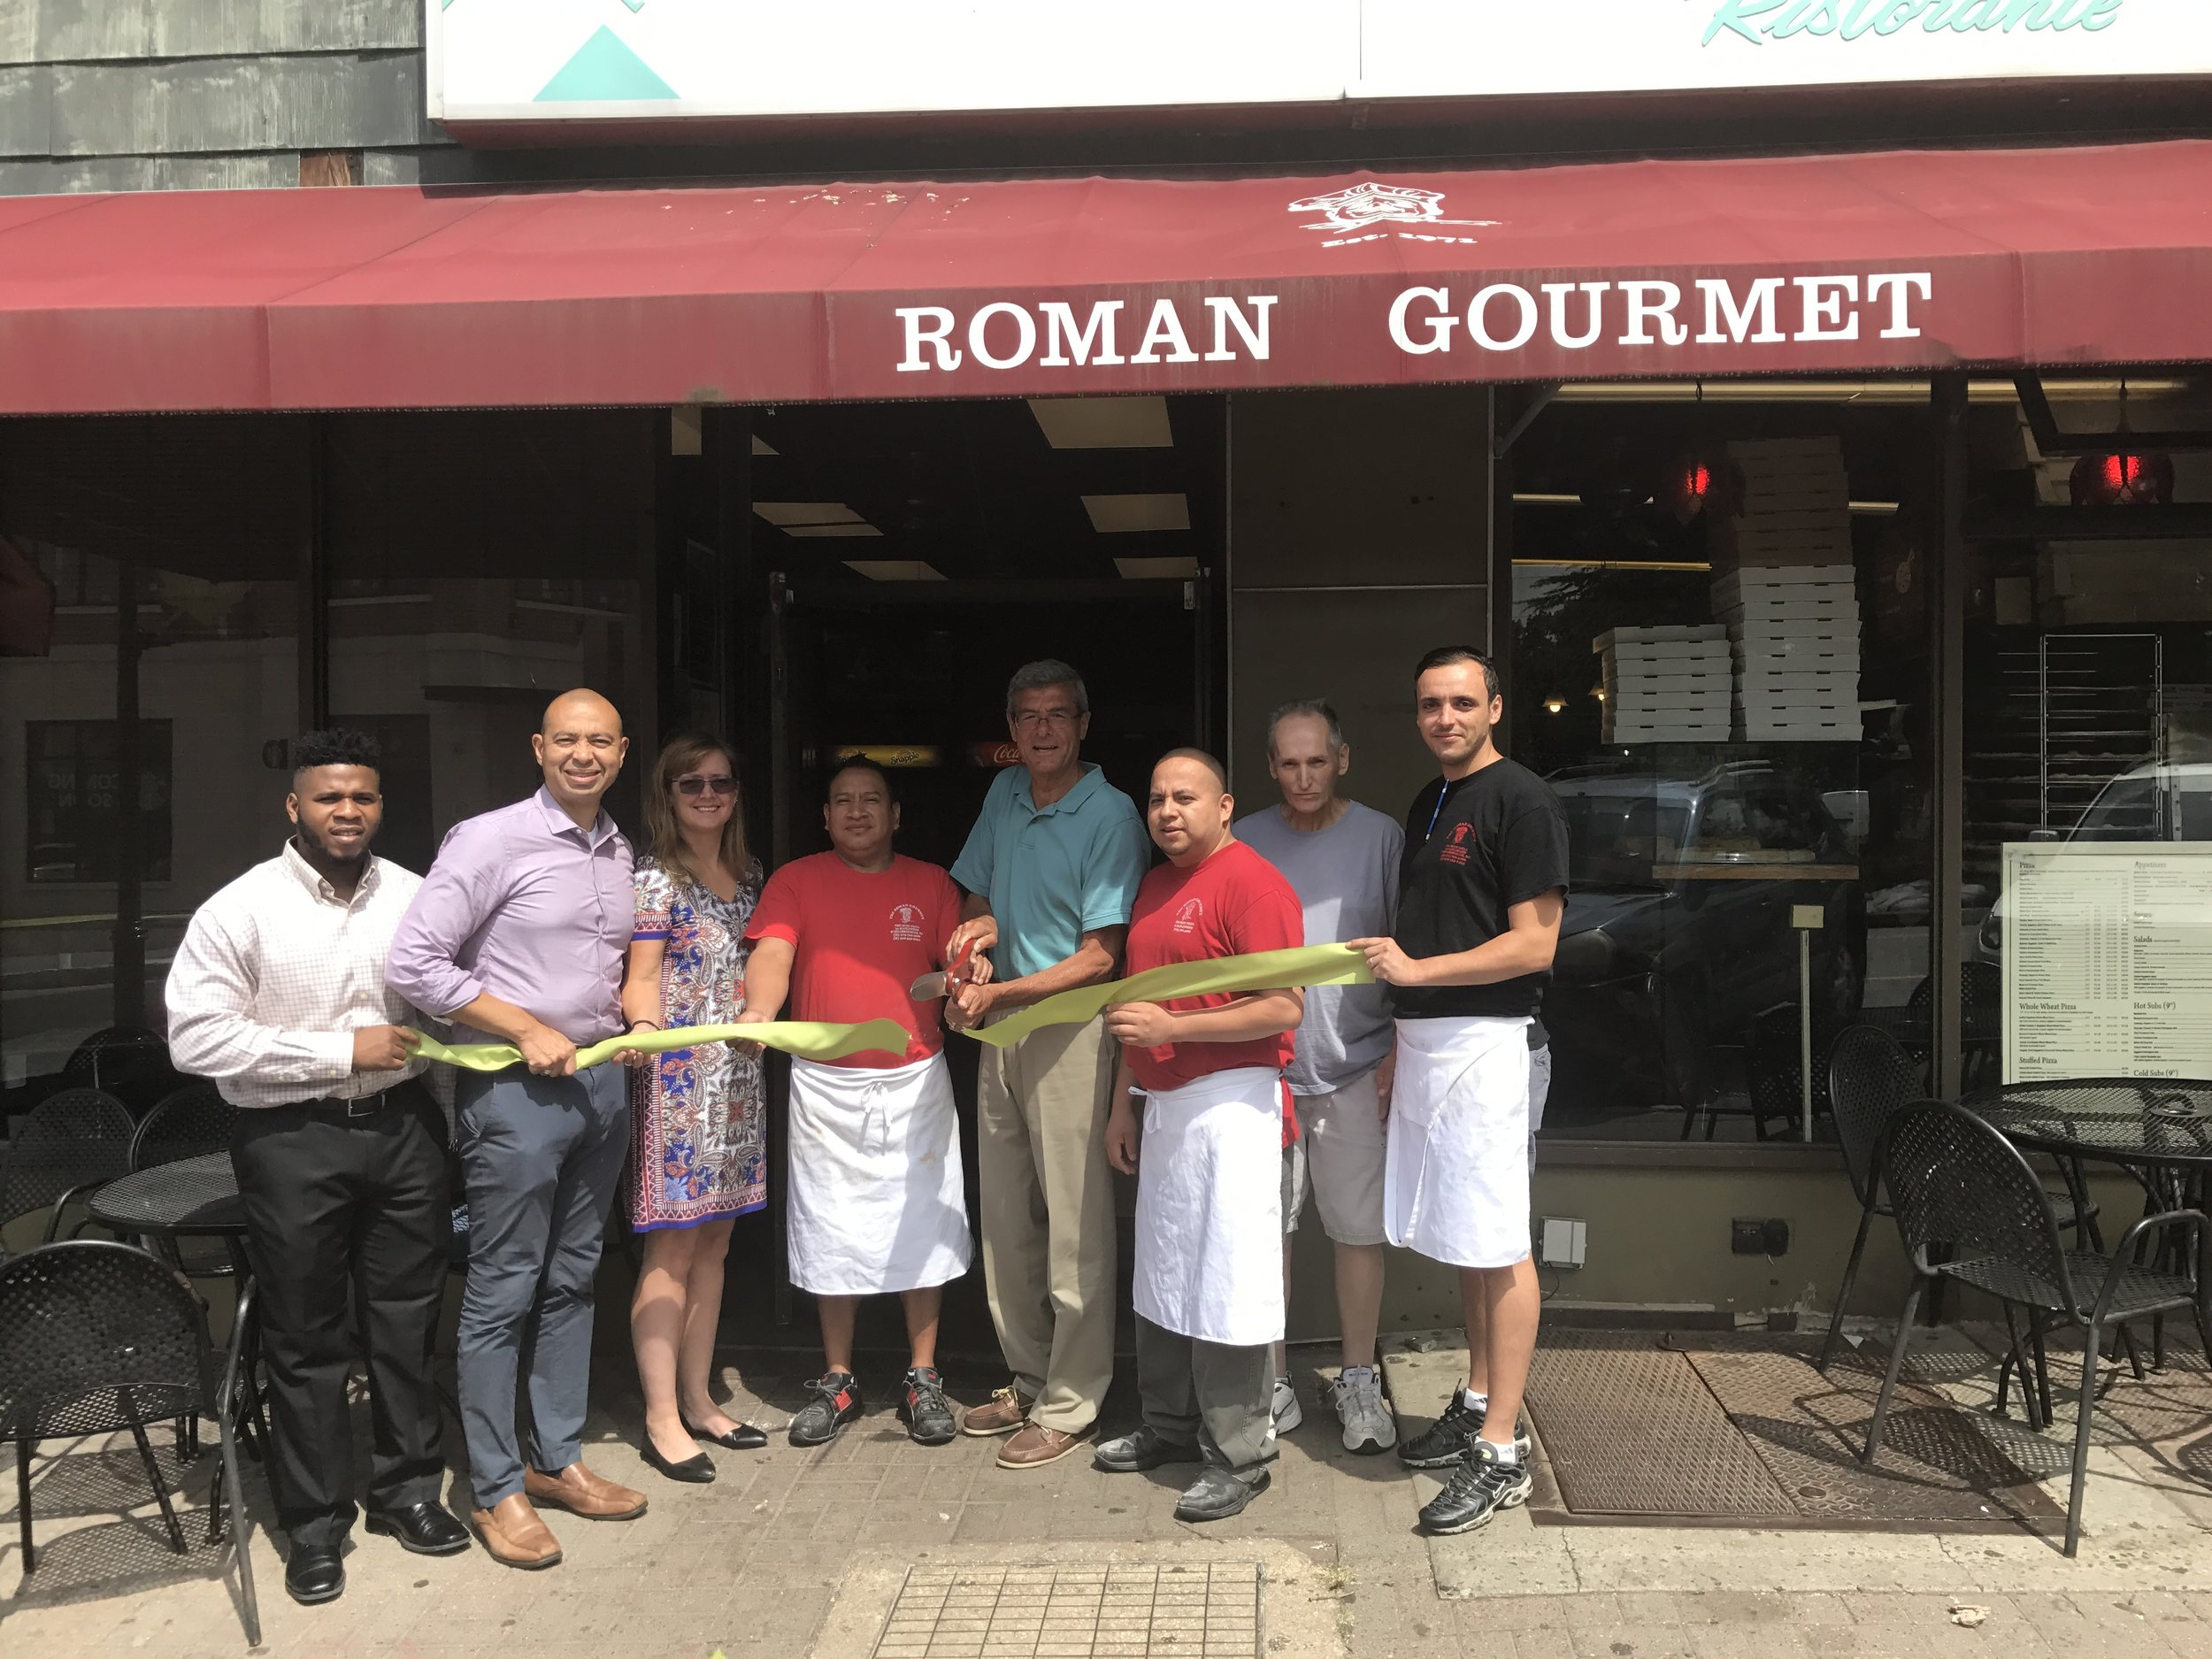 Left to right -- Uche Uneze (Maplewood Green Business intern), Township Committeeman Frank McGehee, Sheila Baker Gujral (Maplewood Environmental Advisory Committee), Johnny Calle (Roman Gourmet), Mayor Vic DeLuca, Pablo Carcamo (Roman Gourmet), John Brown (Roman Gourmet), and Lamine Ameur (Roman Gourmet)